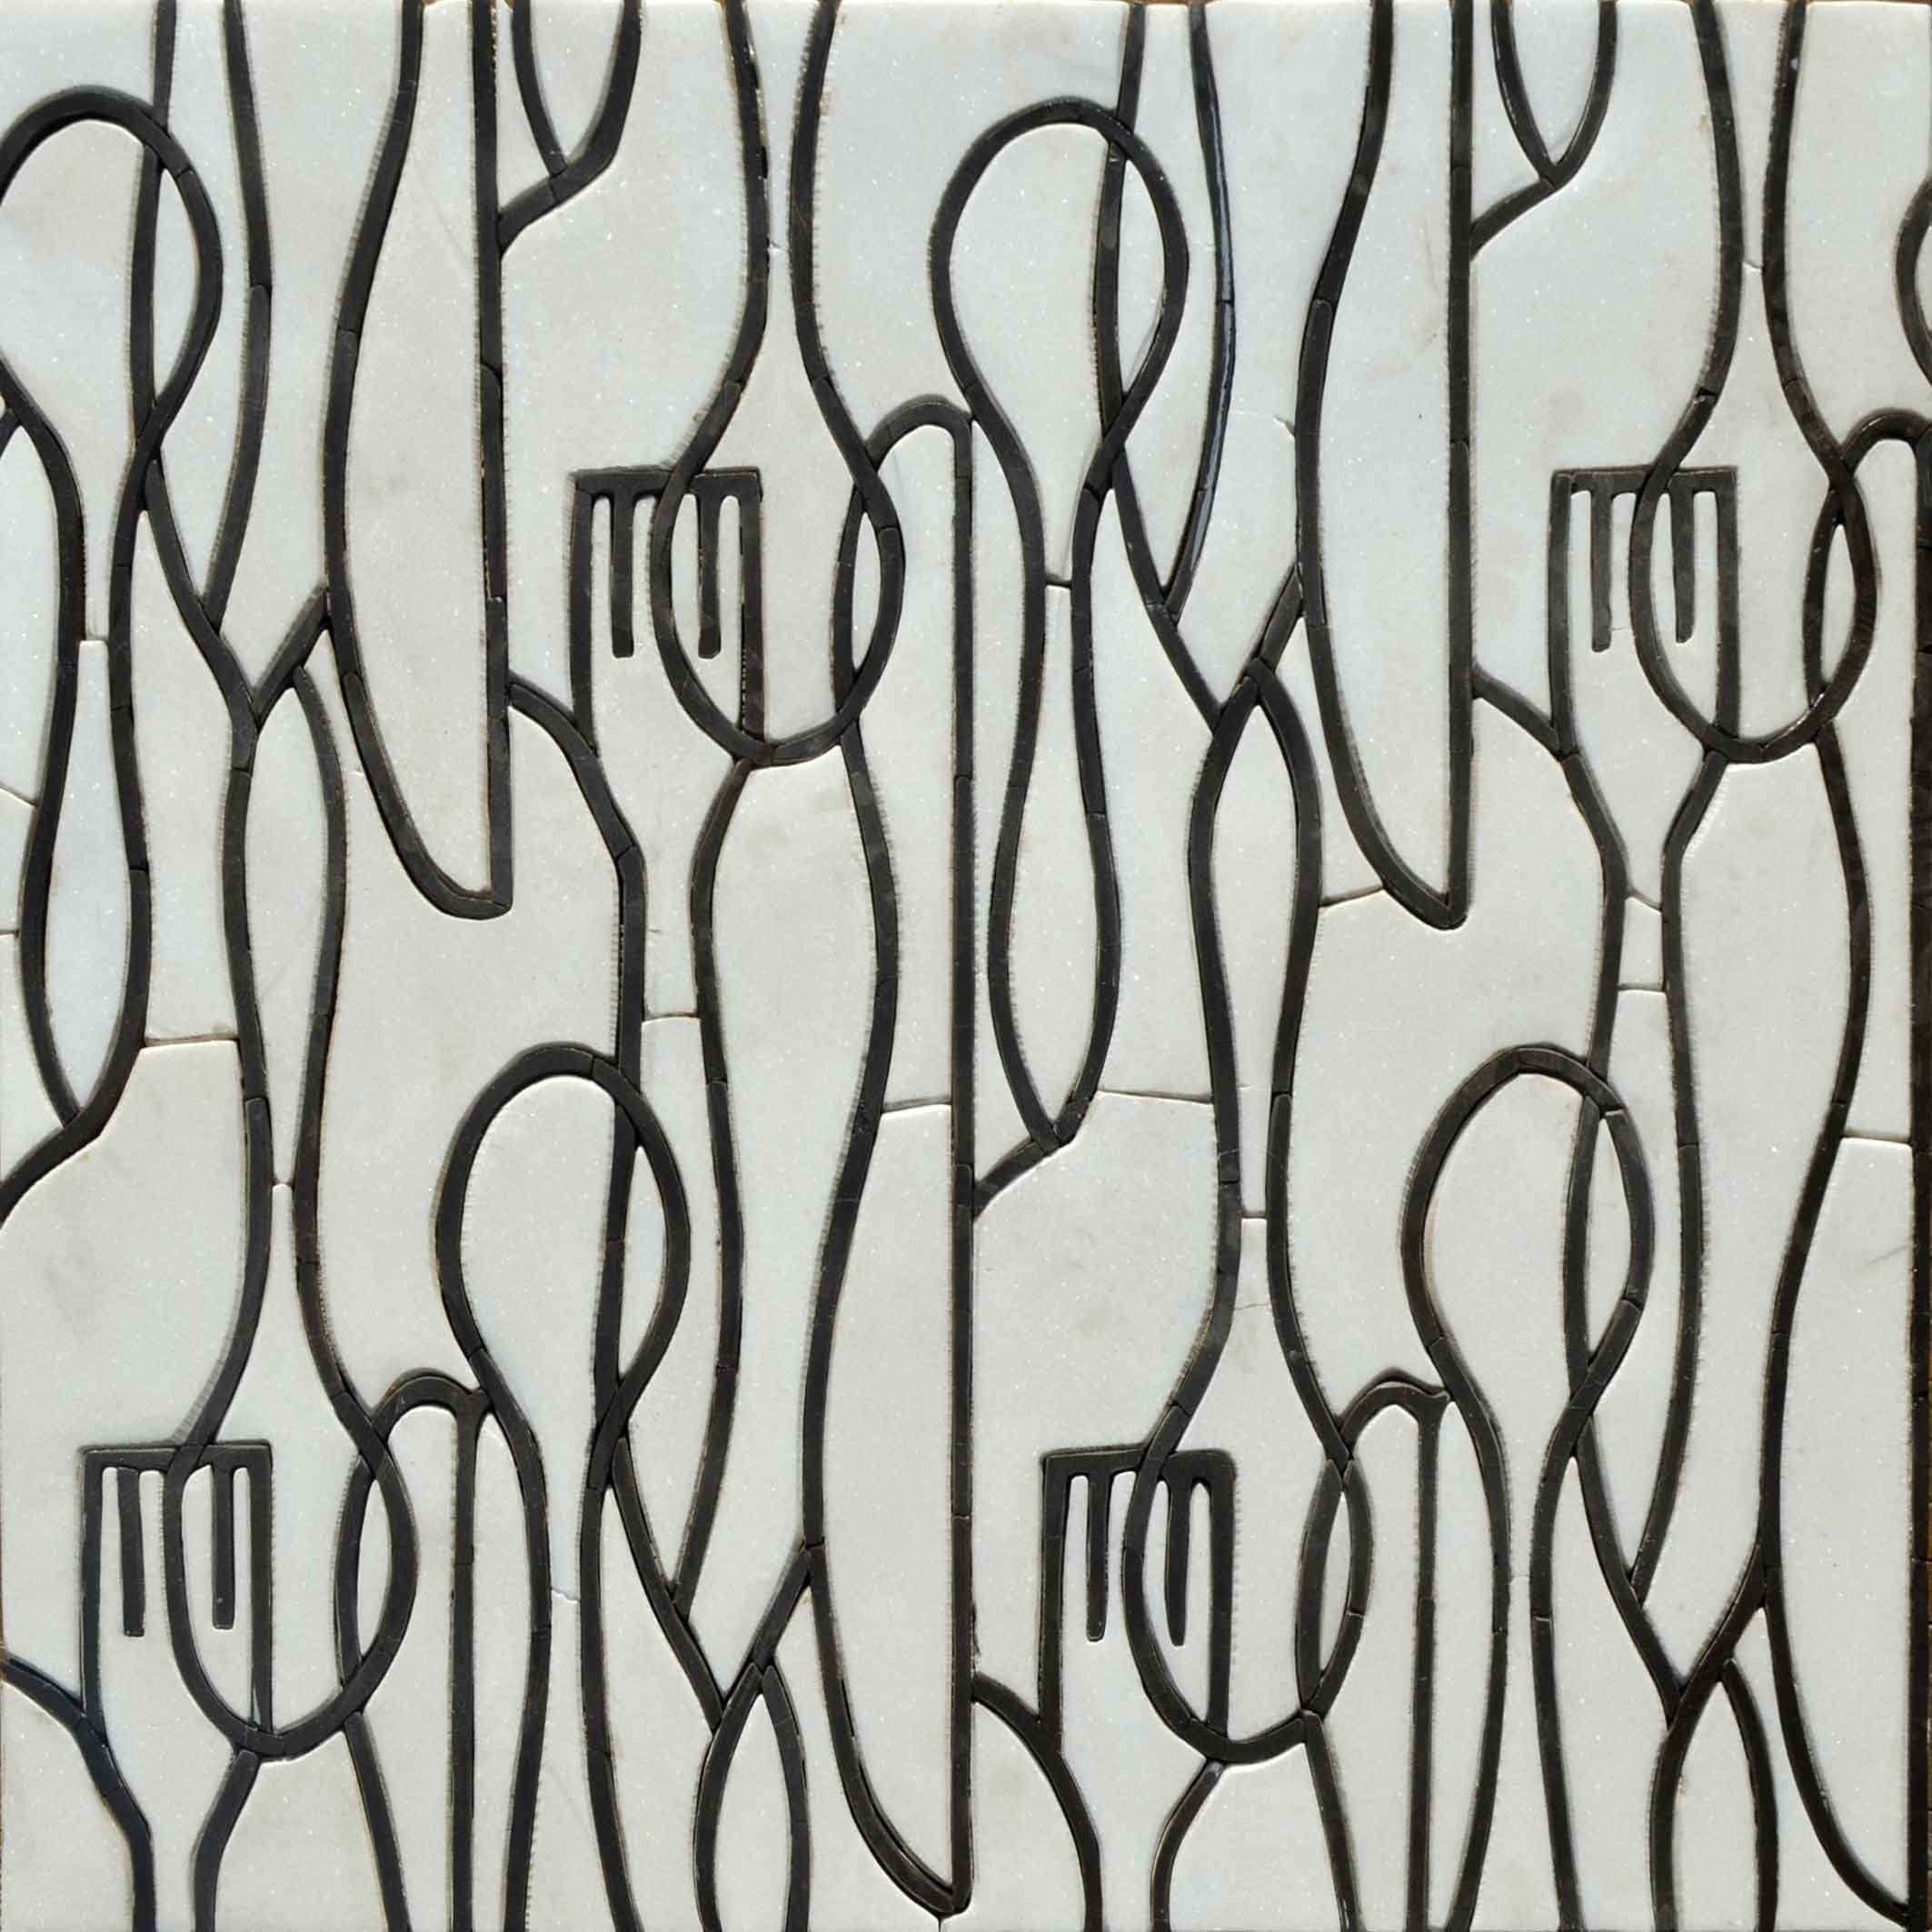 Mosaic Designs- Utensils Patterns